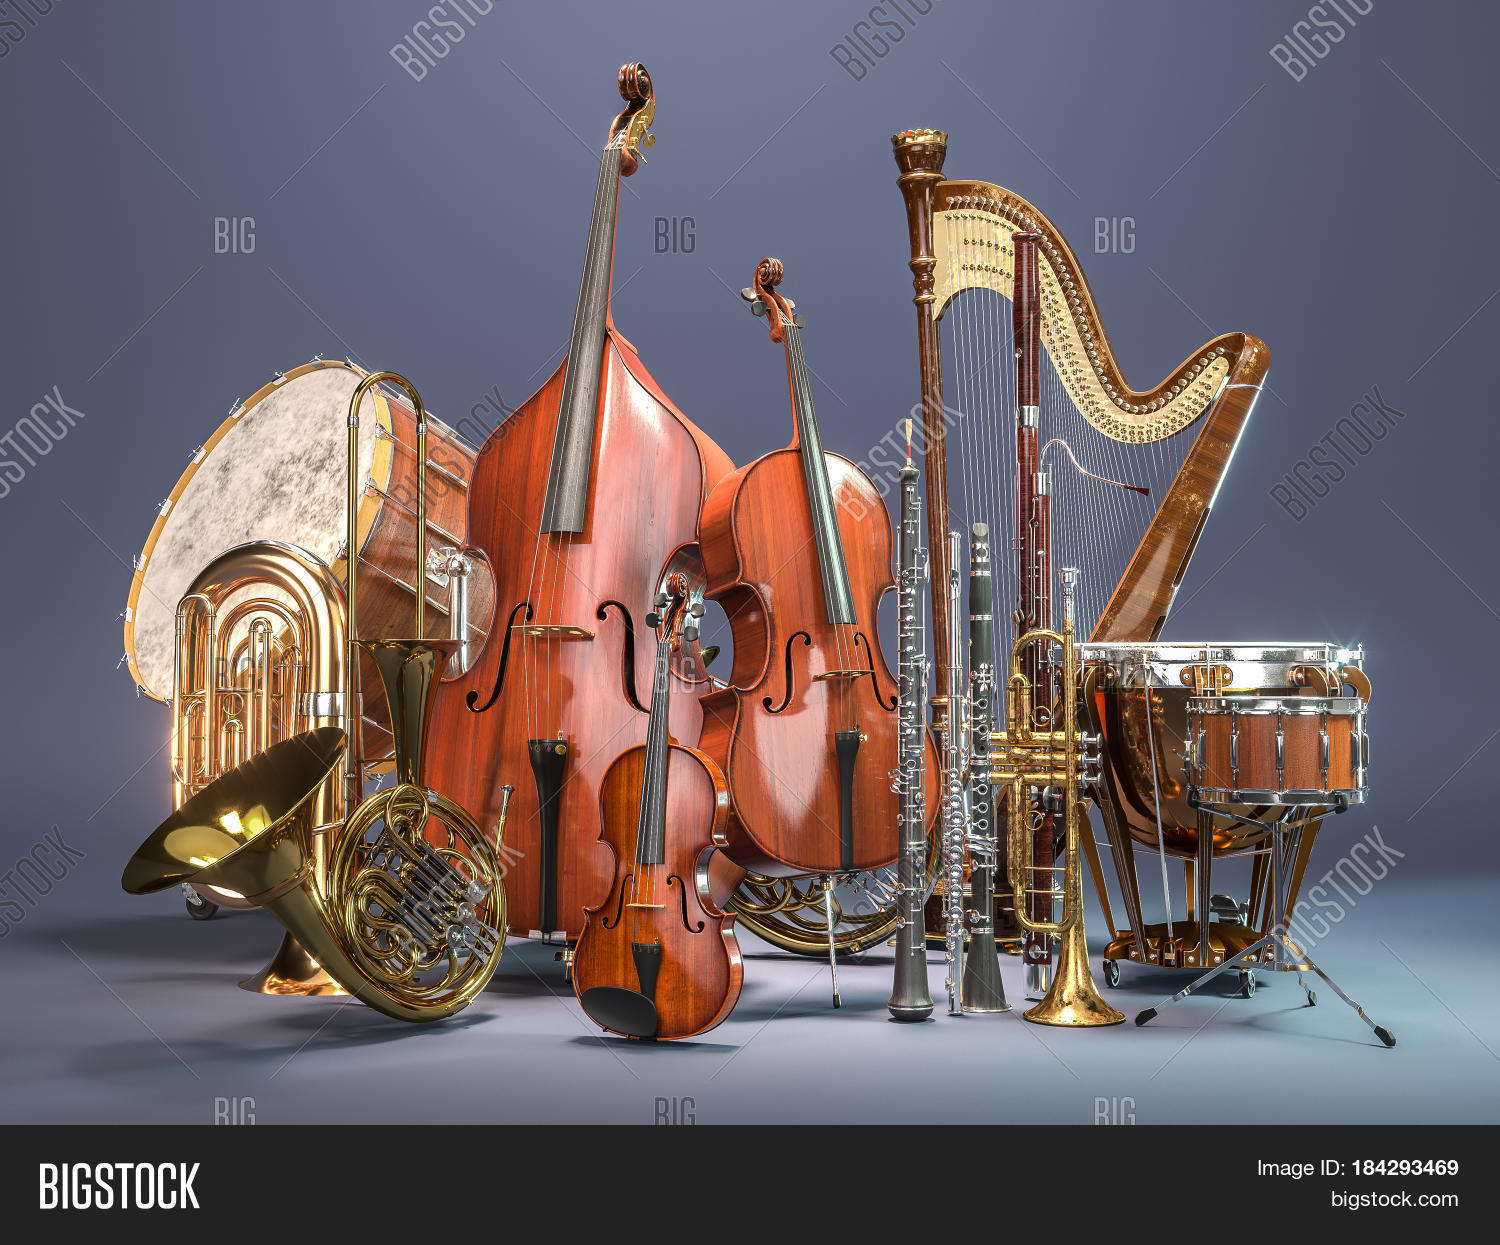 Orchestra Musical Image & Photo (Free Trial) | Bigstock